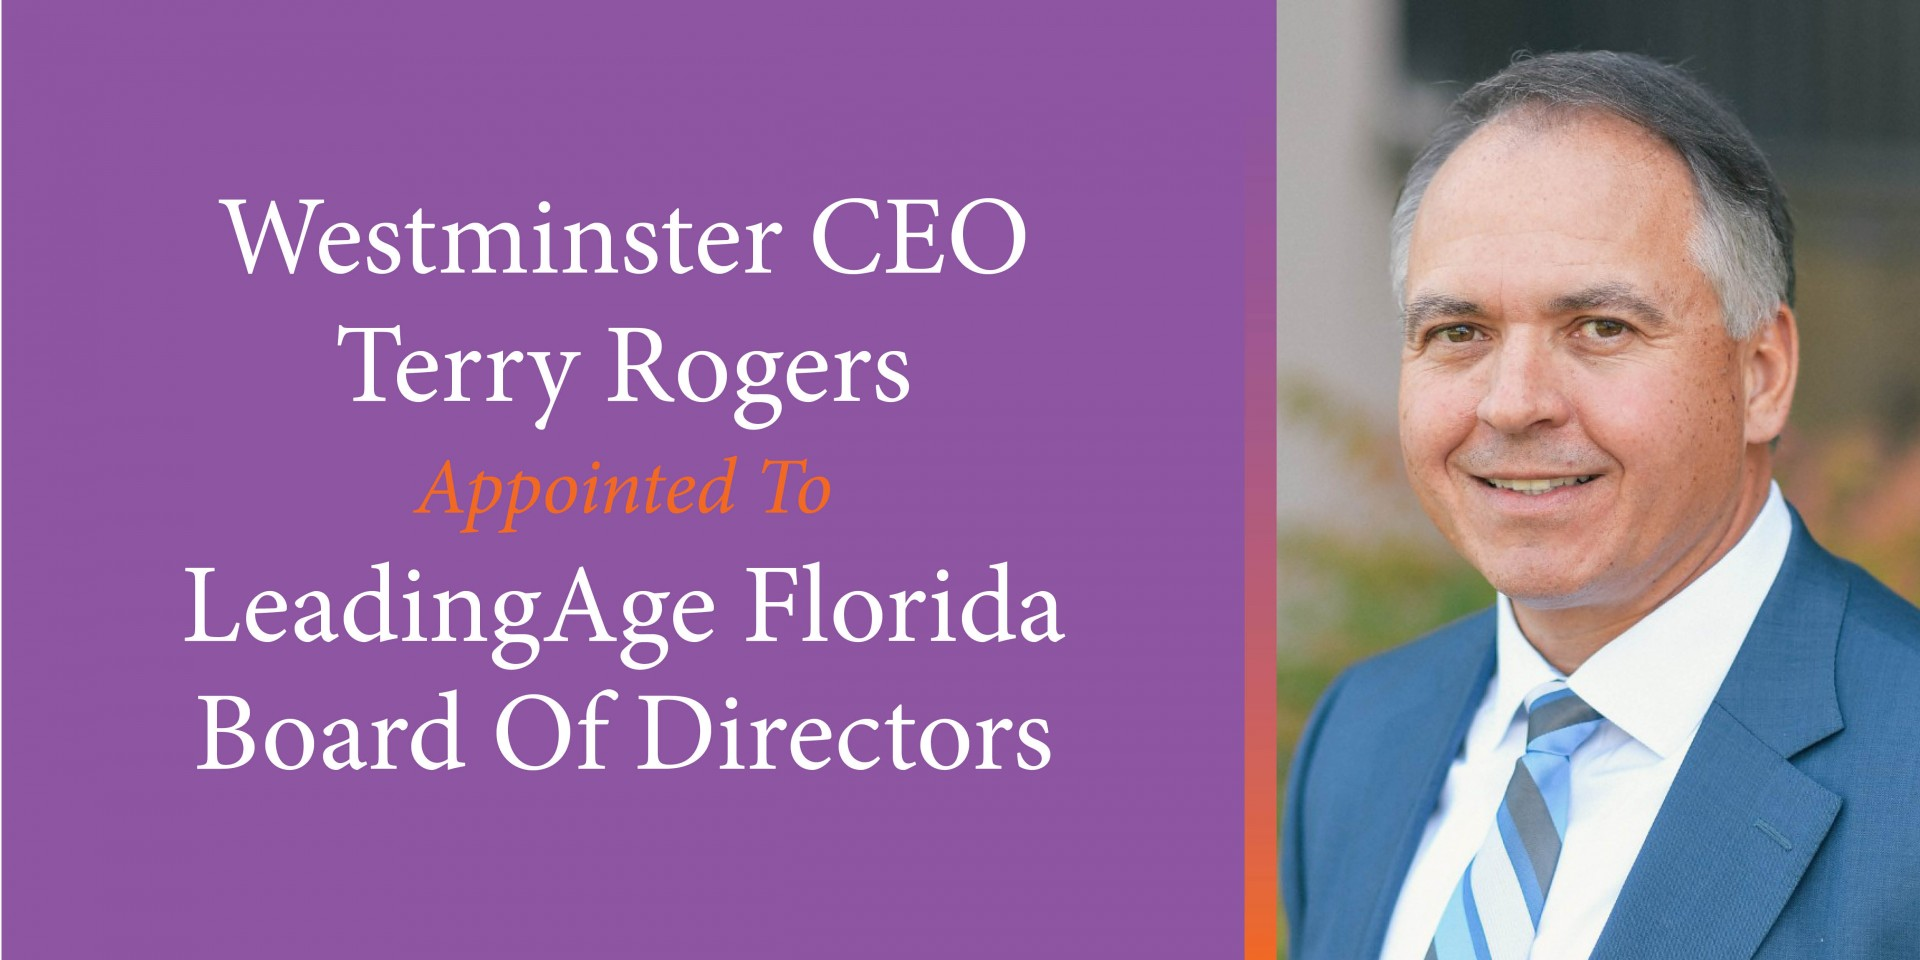 Westminster CEO Terry Rogers Appointed To LeadingAge Florida Board Of Directors